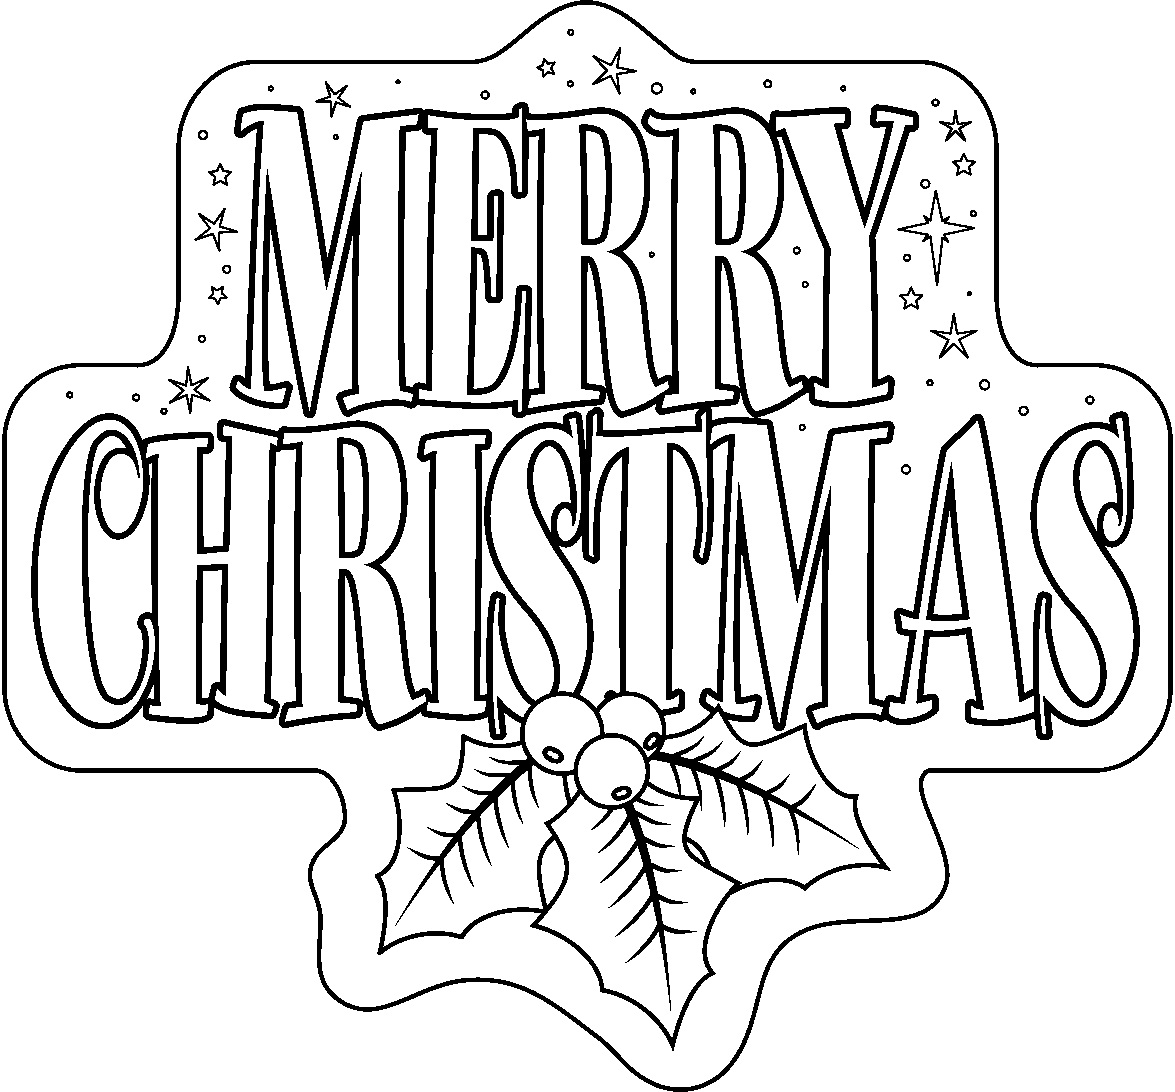 Merry Christmas Words Coloring Pages With Free Printable